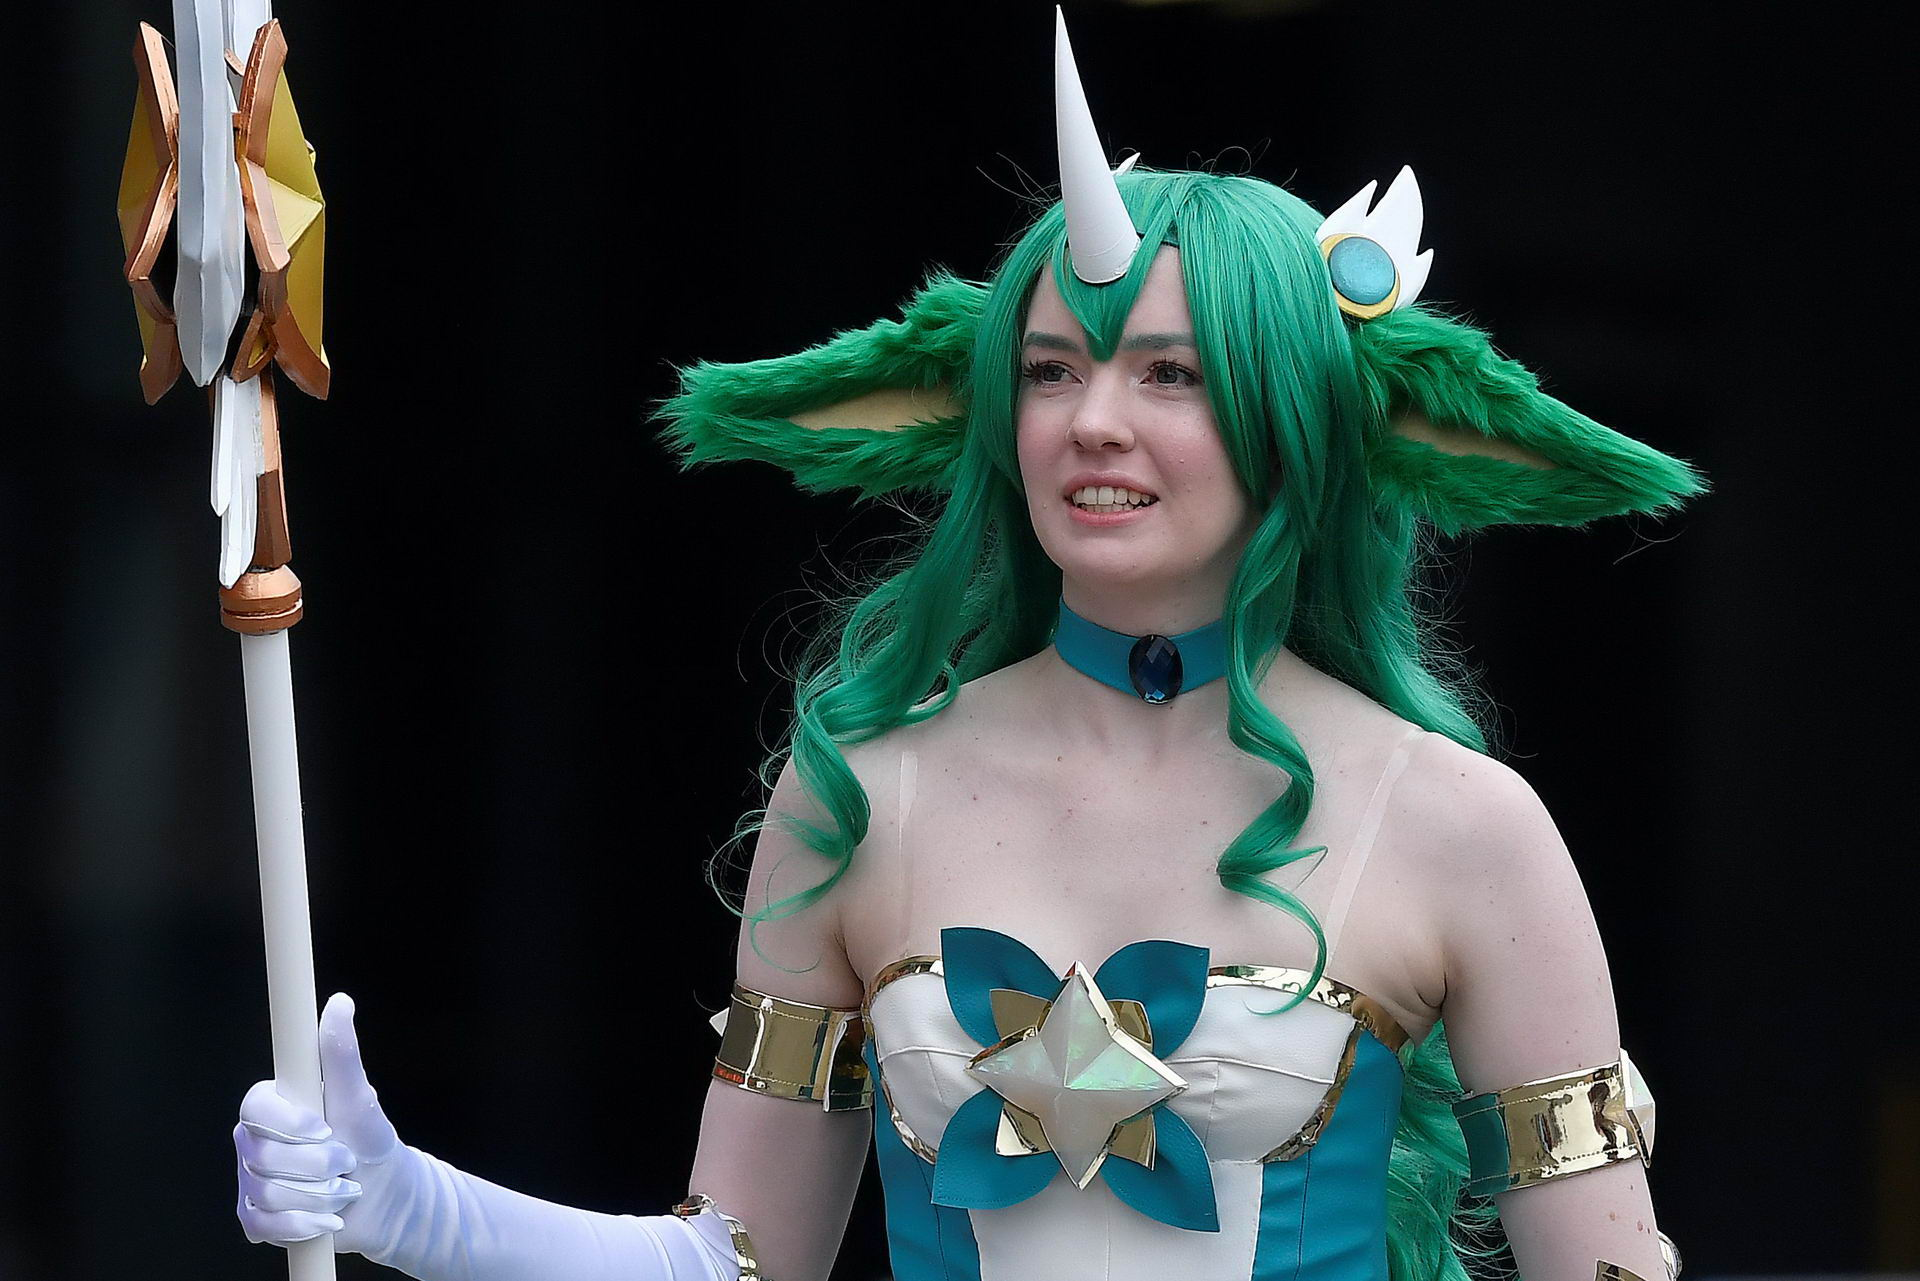 Attendees arrive dressed as their favourite comic characters for the MCM London Comic Con, a convention to celebrate the culture of comic books and related art forms, in London, Britain